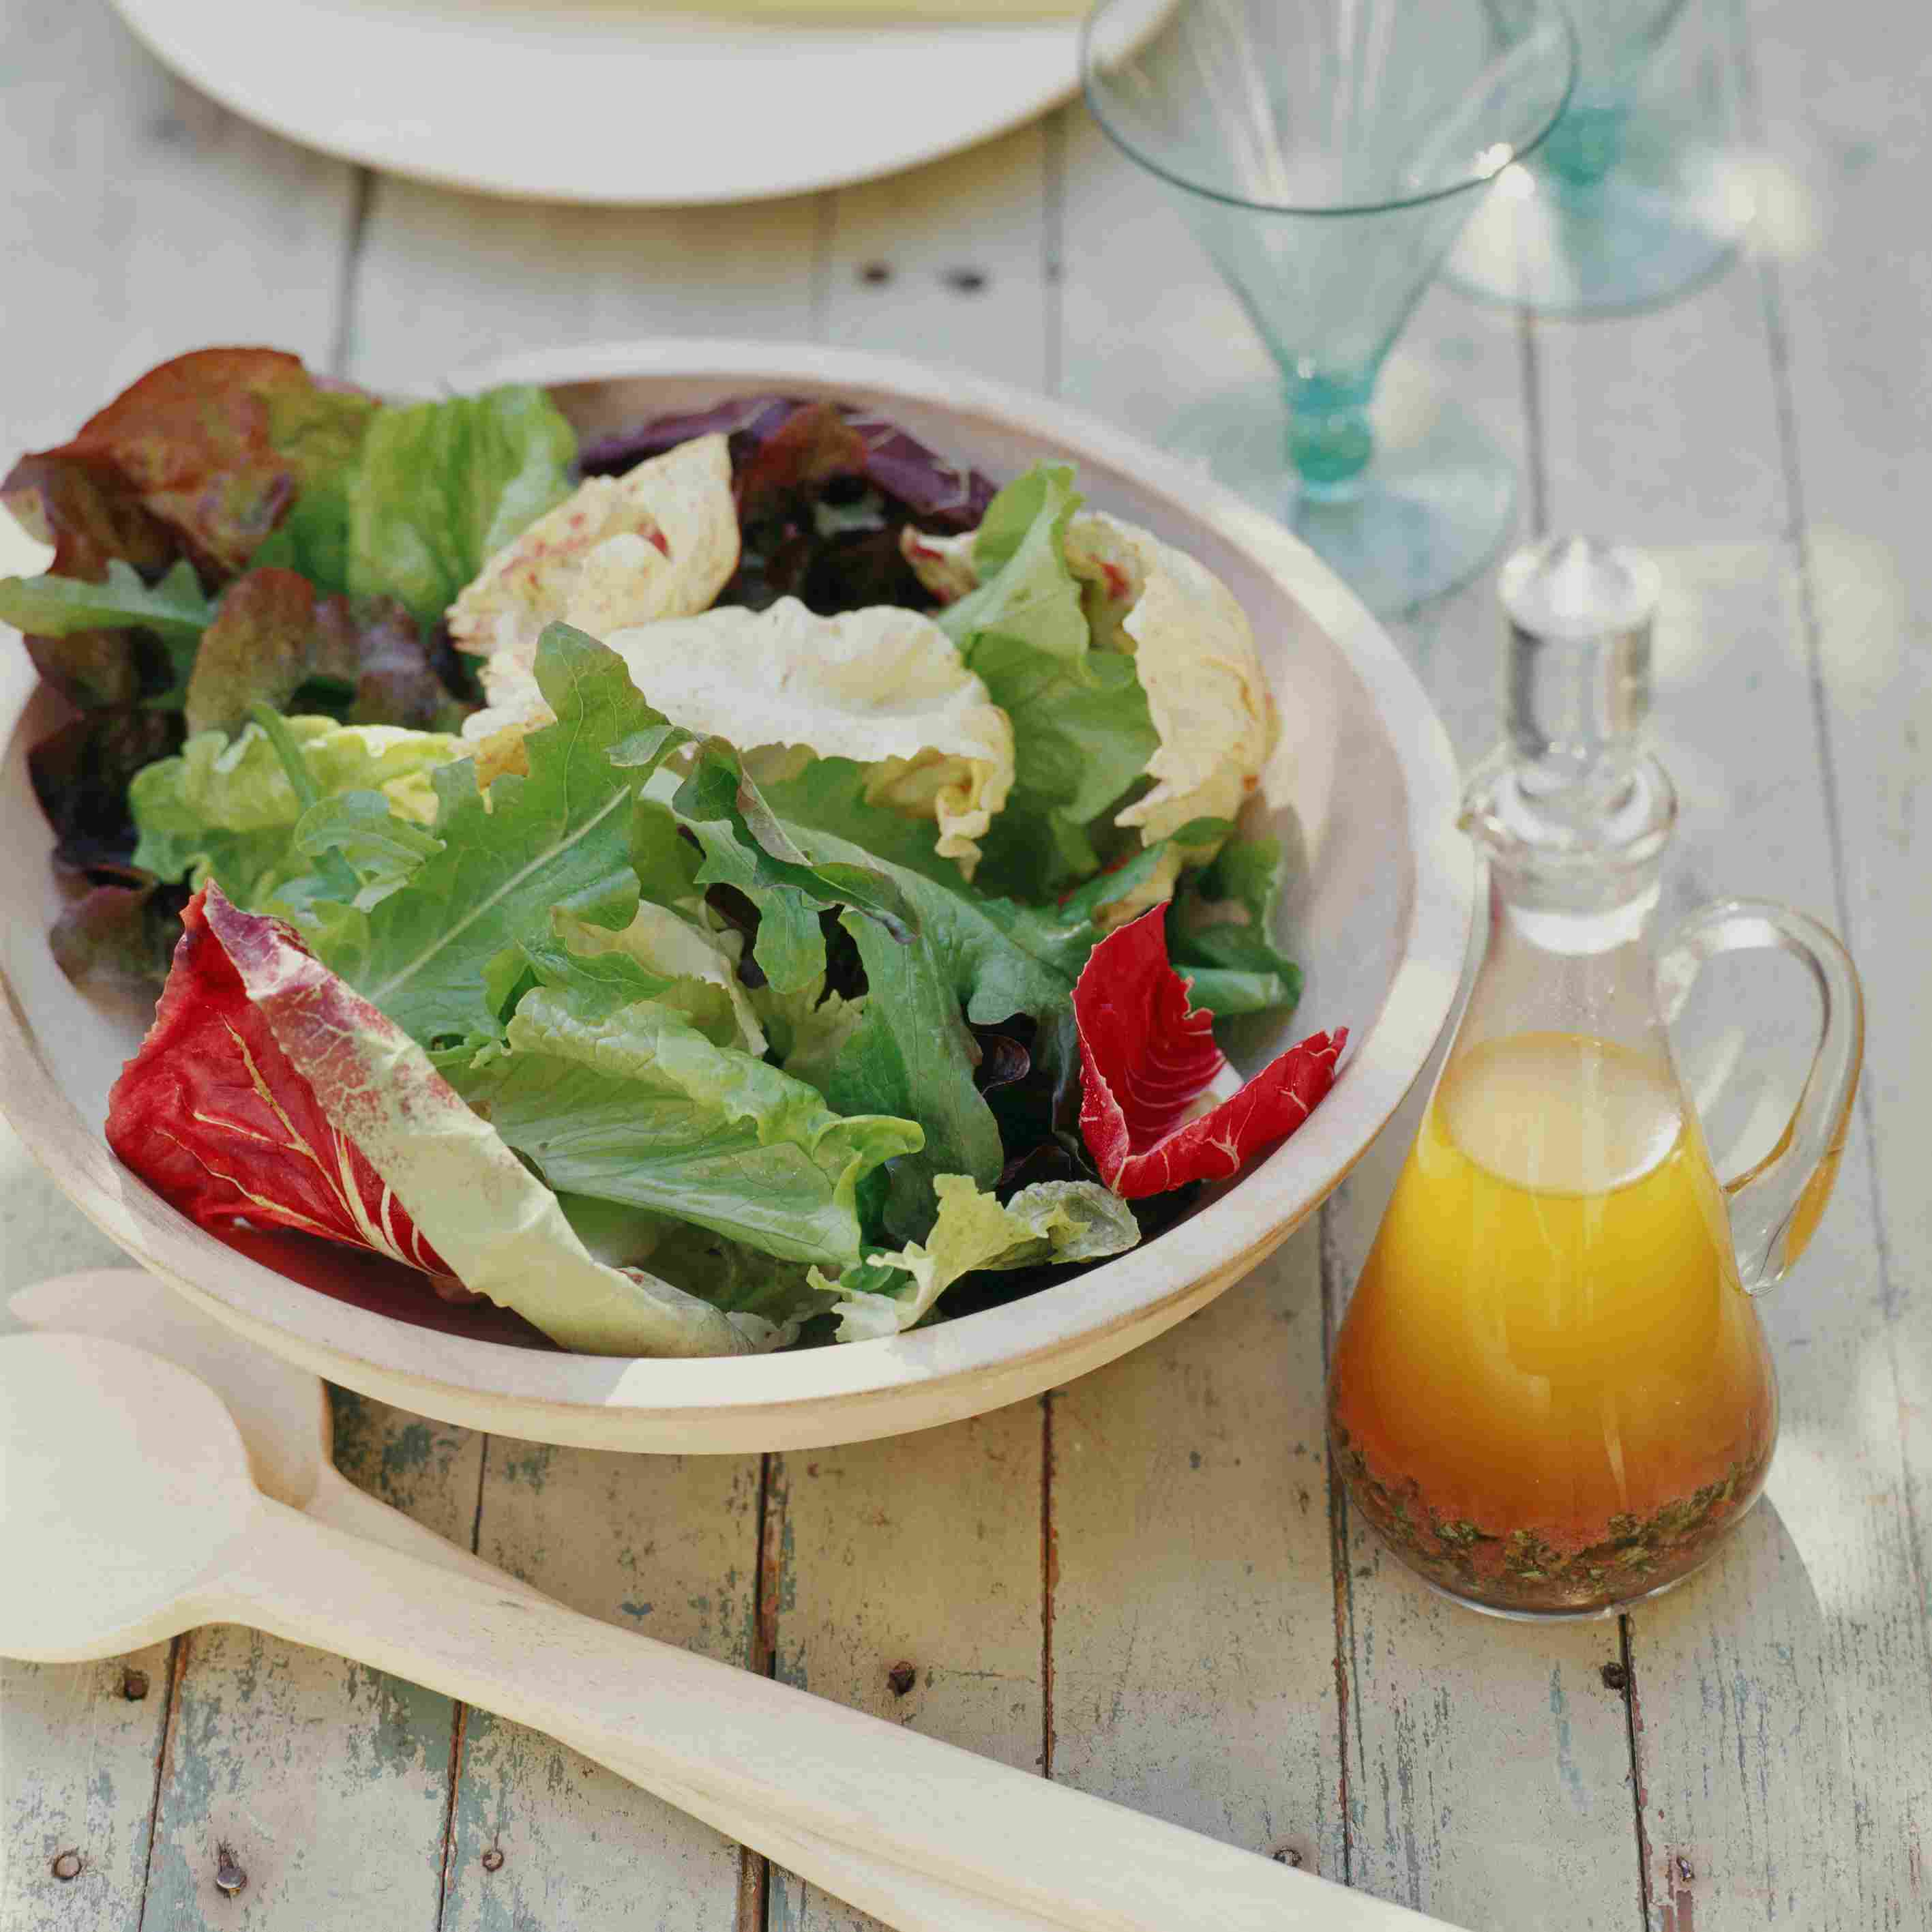 Salad in a wooden bowl with vinaigrette.